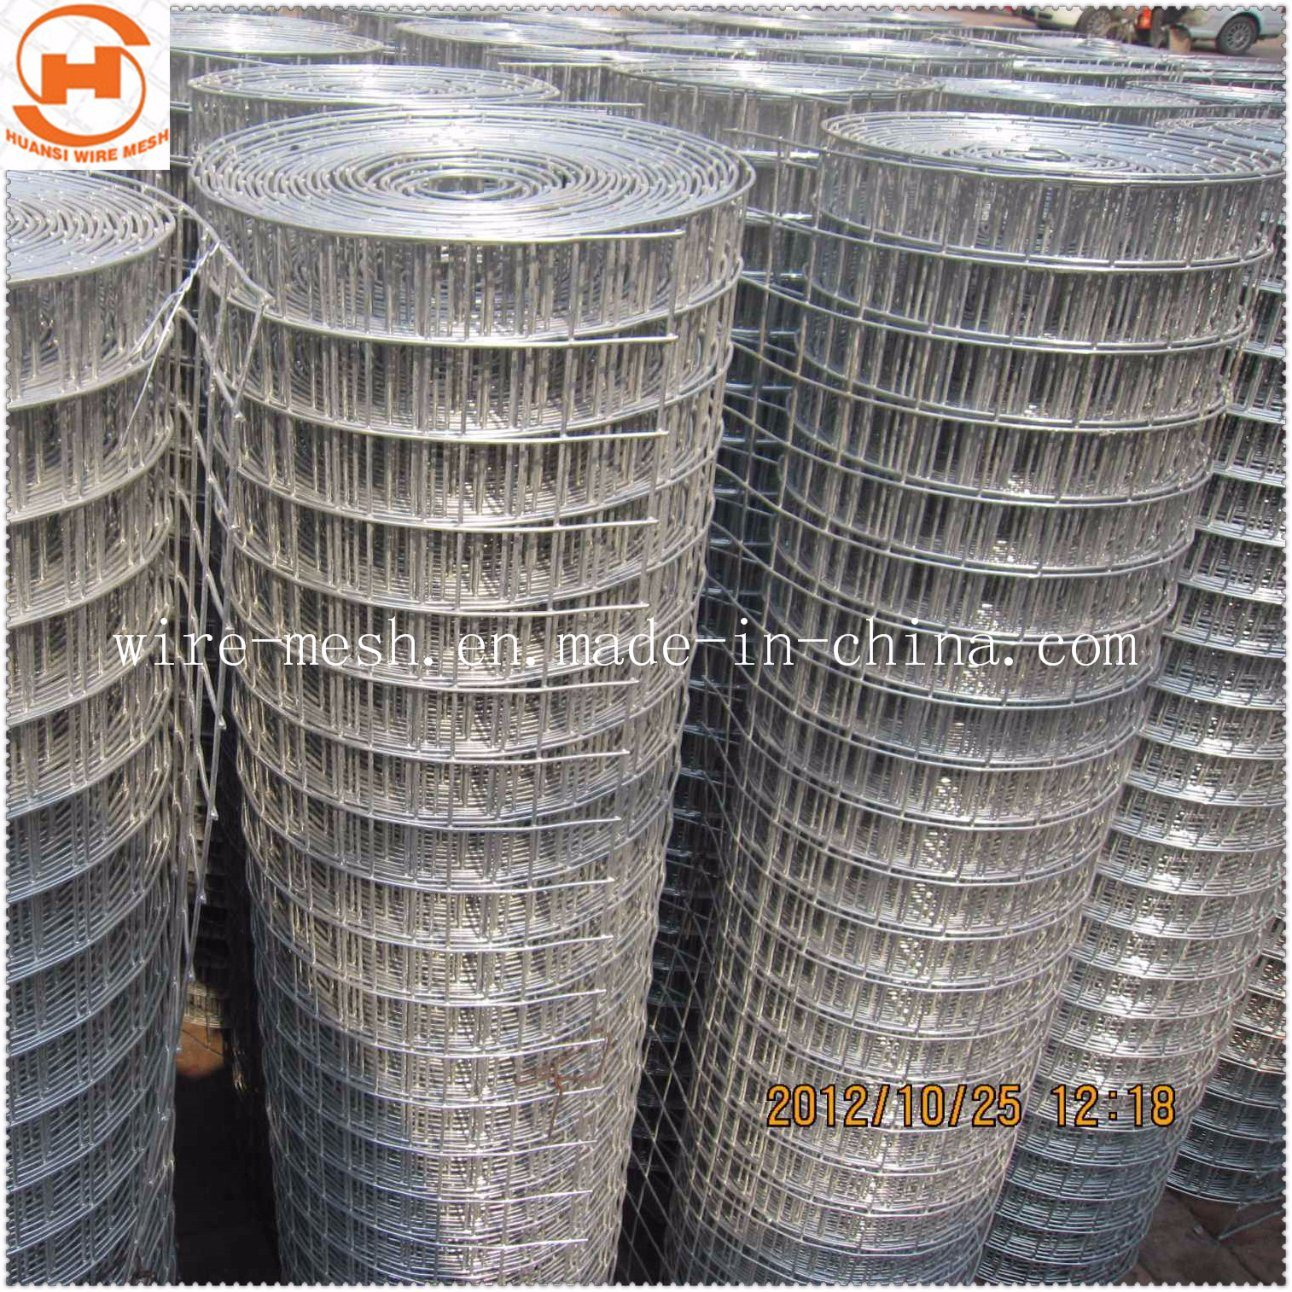 China Stainless Steel/Galvanized Welded Wire Mesh for Building Used ...